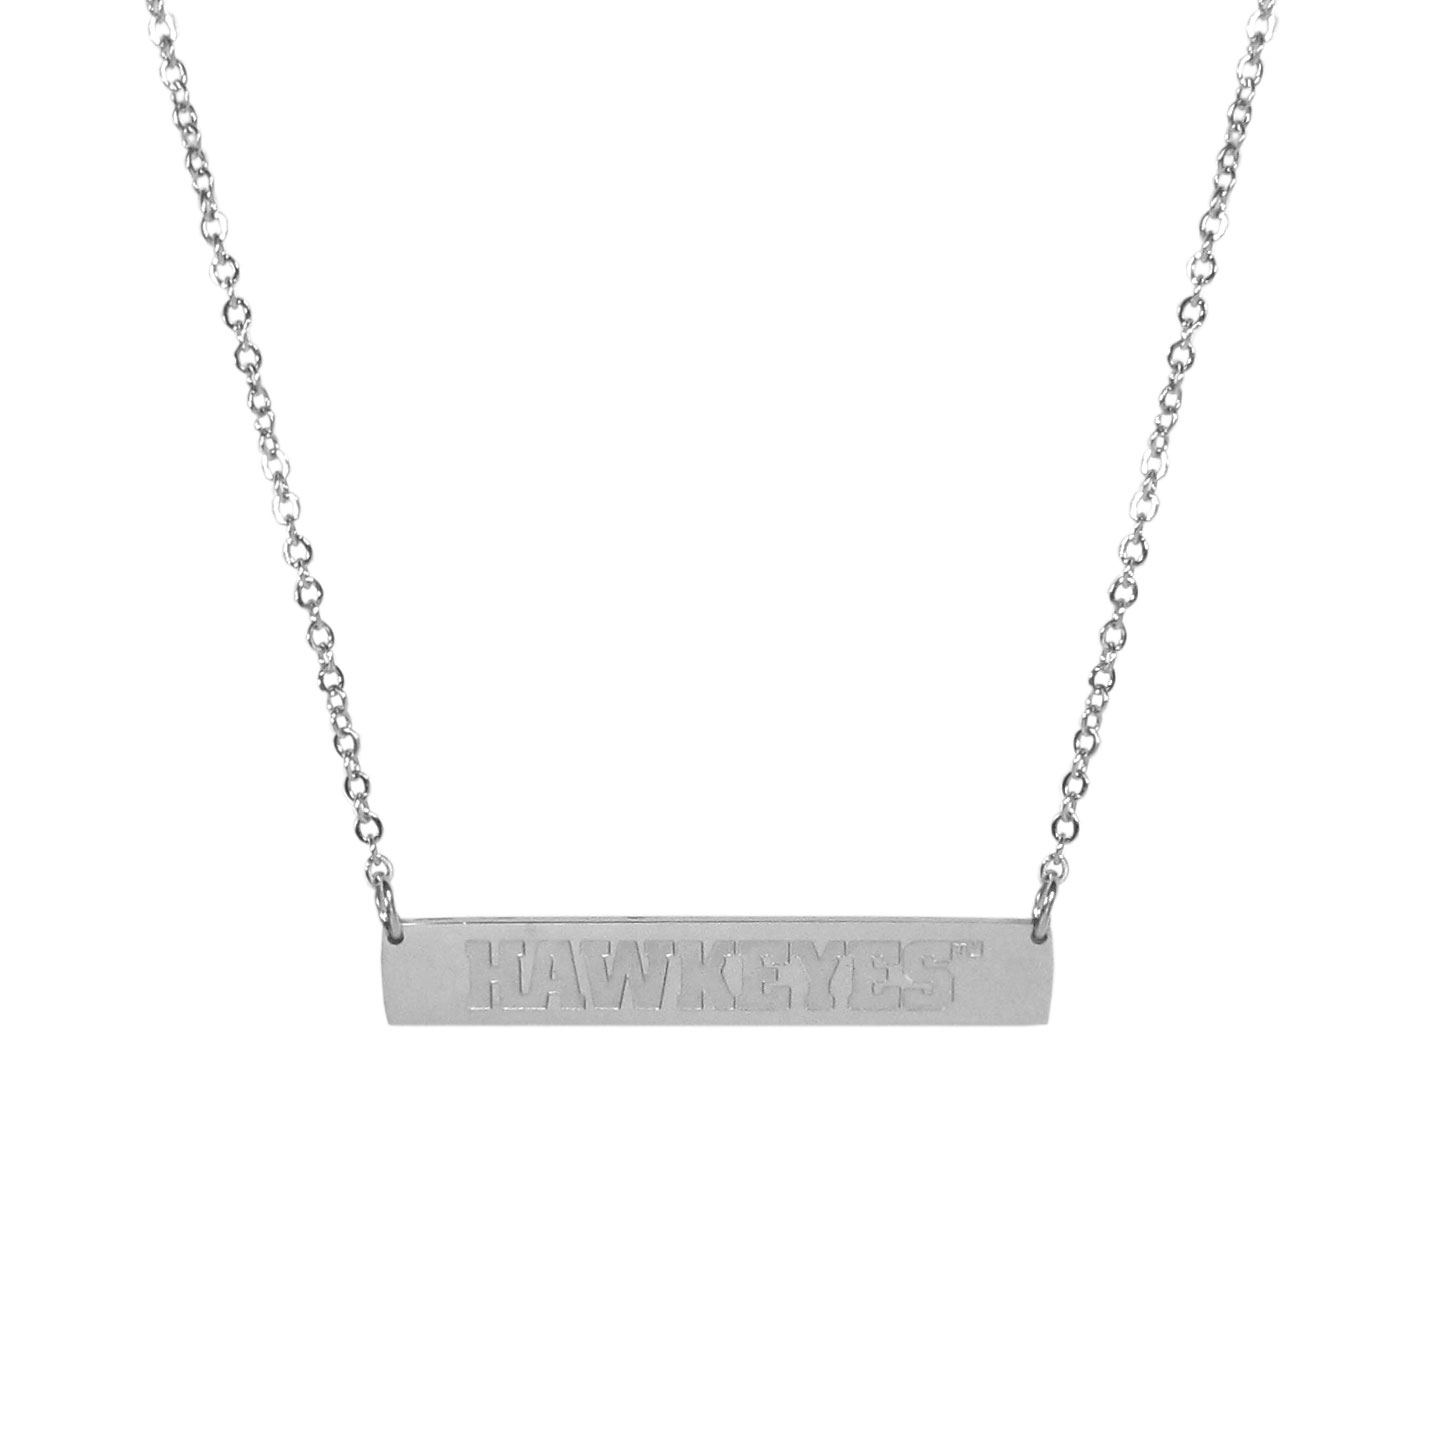 Iowa Hawkeyes Bar Necklace - Simply beautiful Iowa Hawkeyes bar necklace on a 20 inch link chain with 2 inch adjustable extender. This light-weight bar necklace has a stylish silver colored finish with the team name expertly etched on the 1.5 inch bar. Every female  fan will enjoy this contempory fashion accessory.